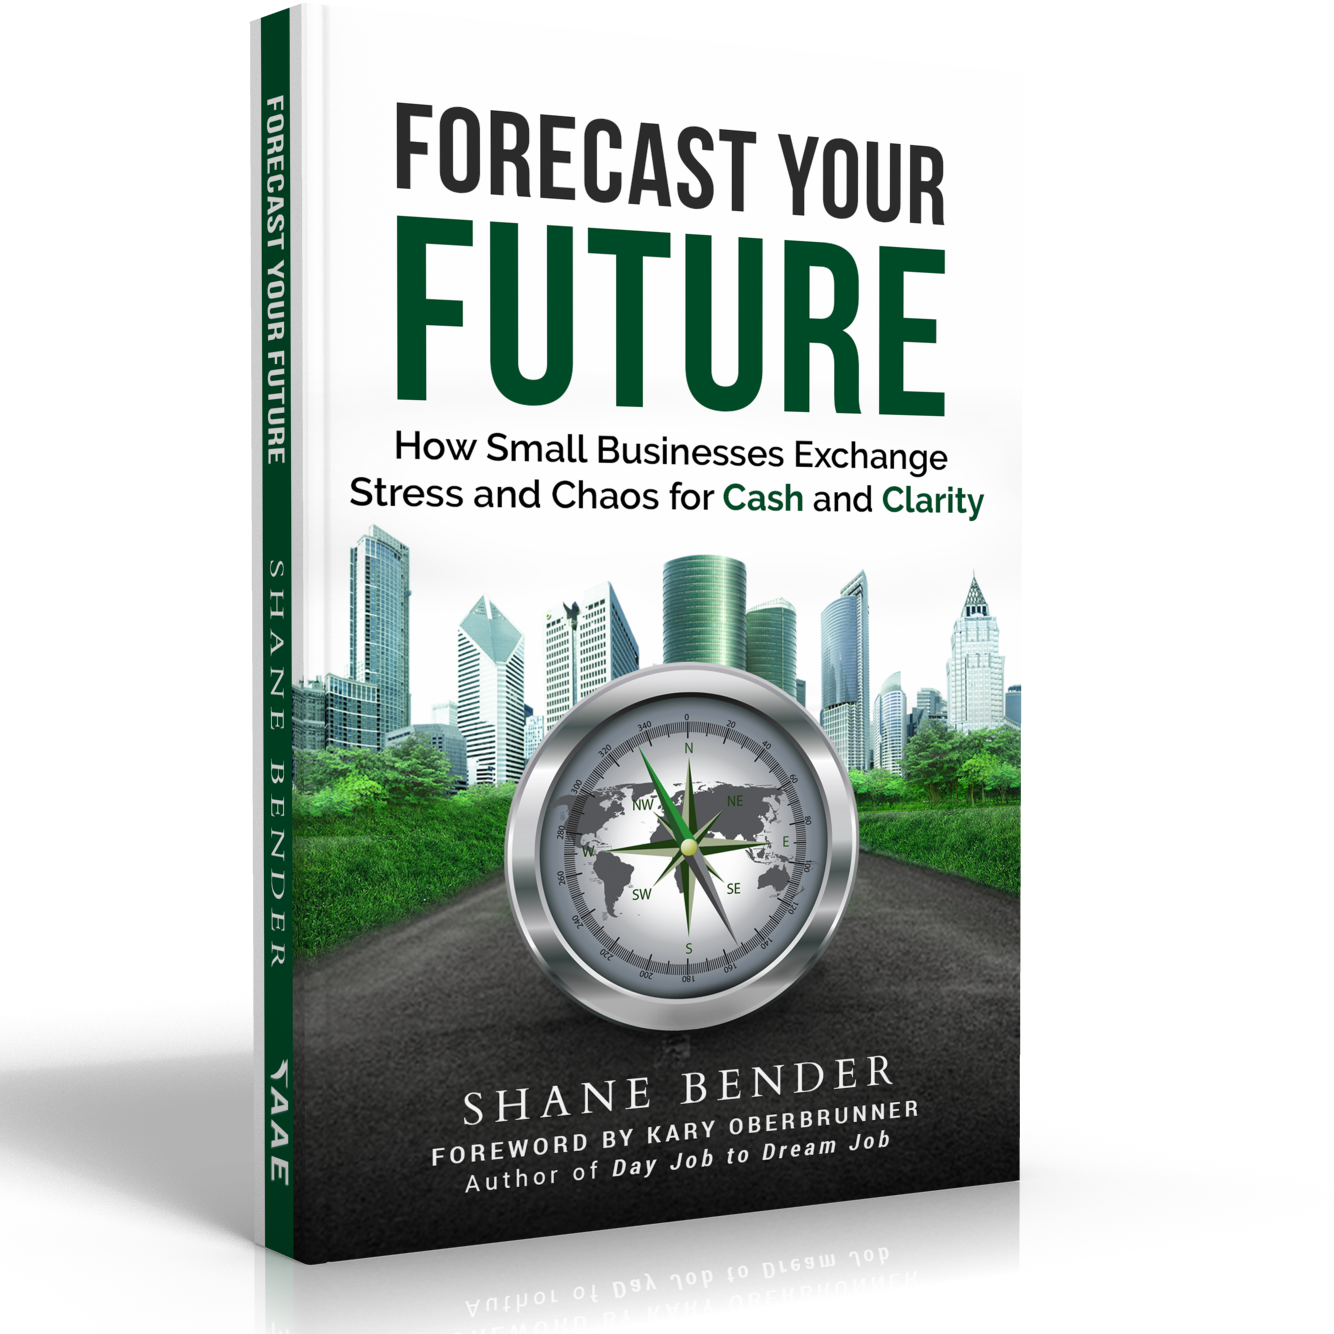 Forecast Your Future book by Shane Bender